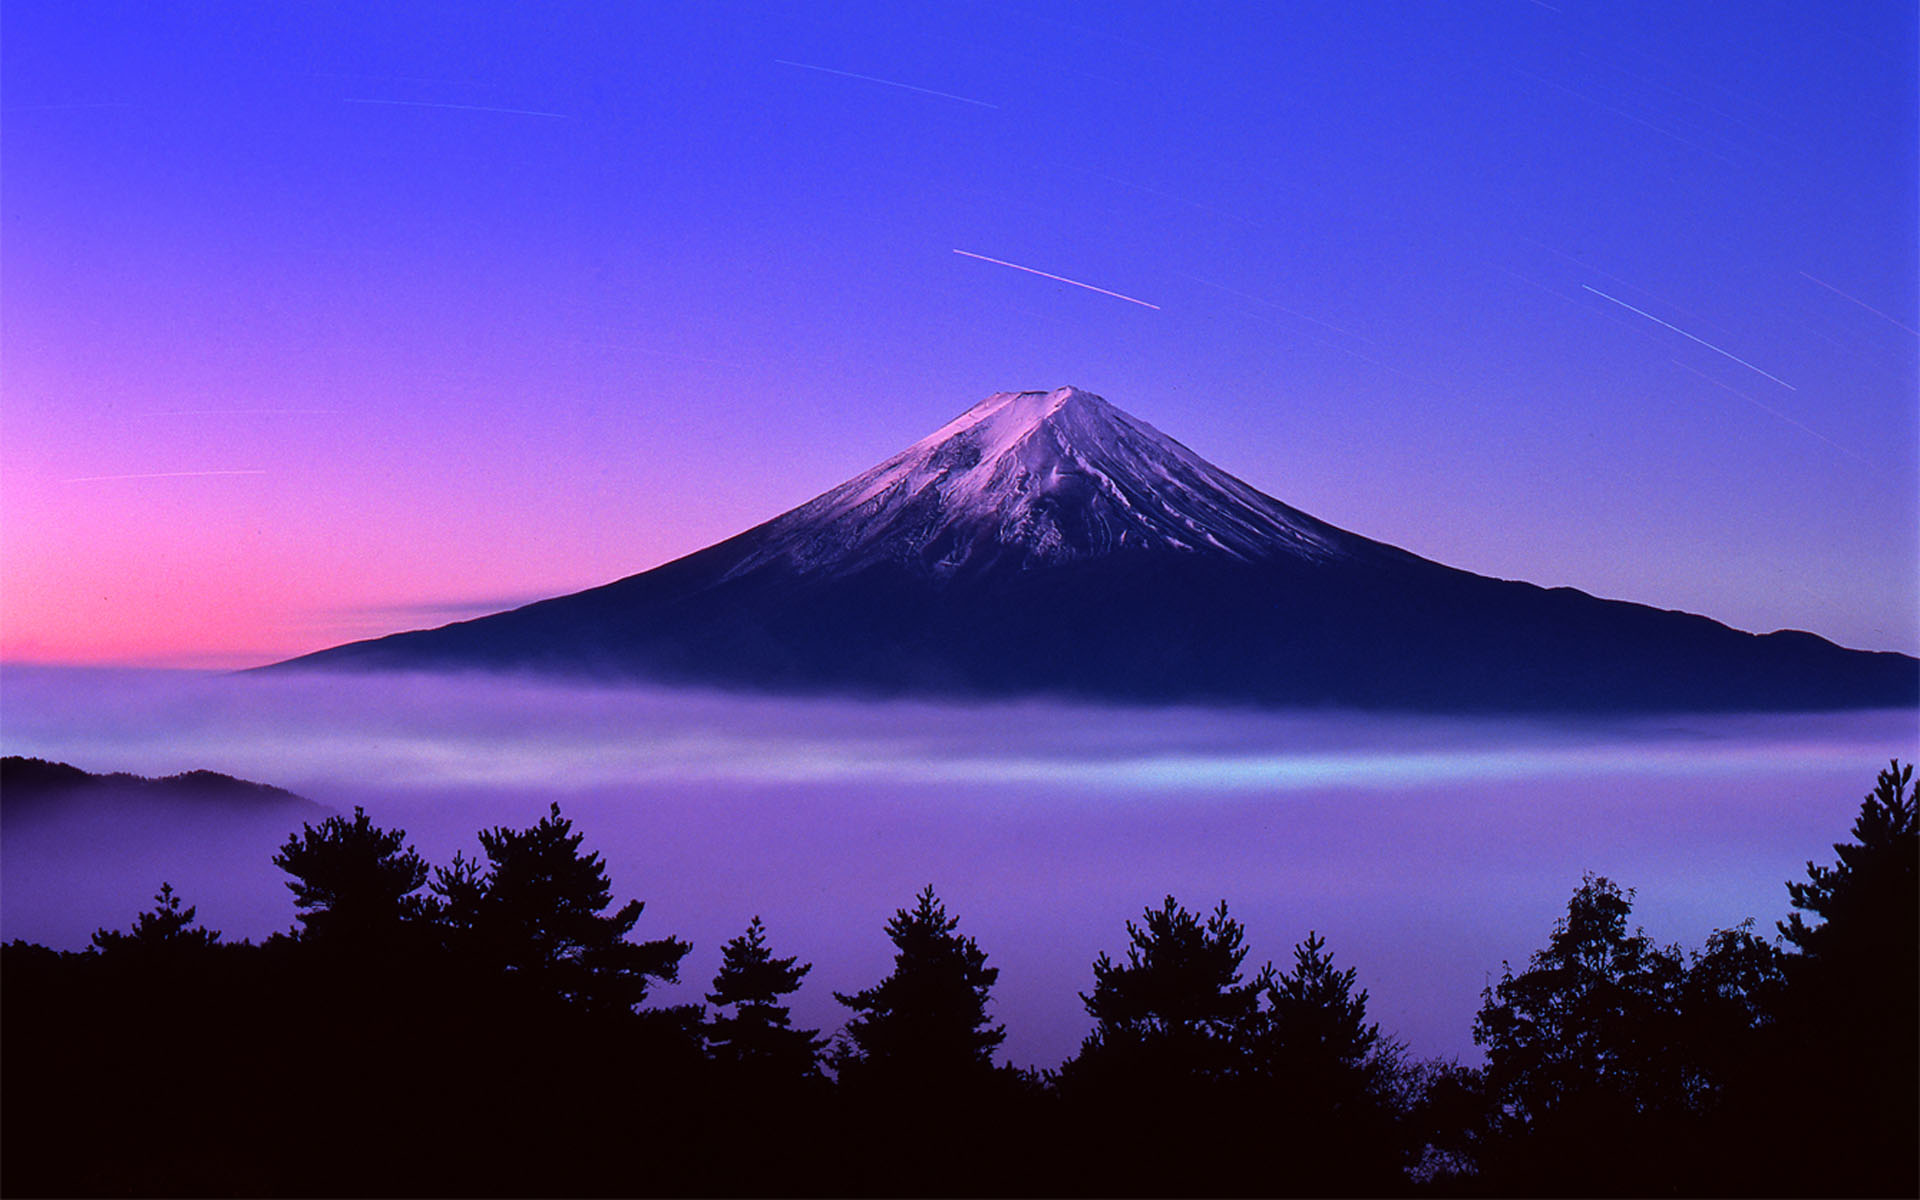 Mount Fuji Under Snow Wallpaper   Travel HD Wallpapers 1920x1200